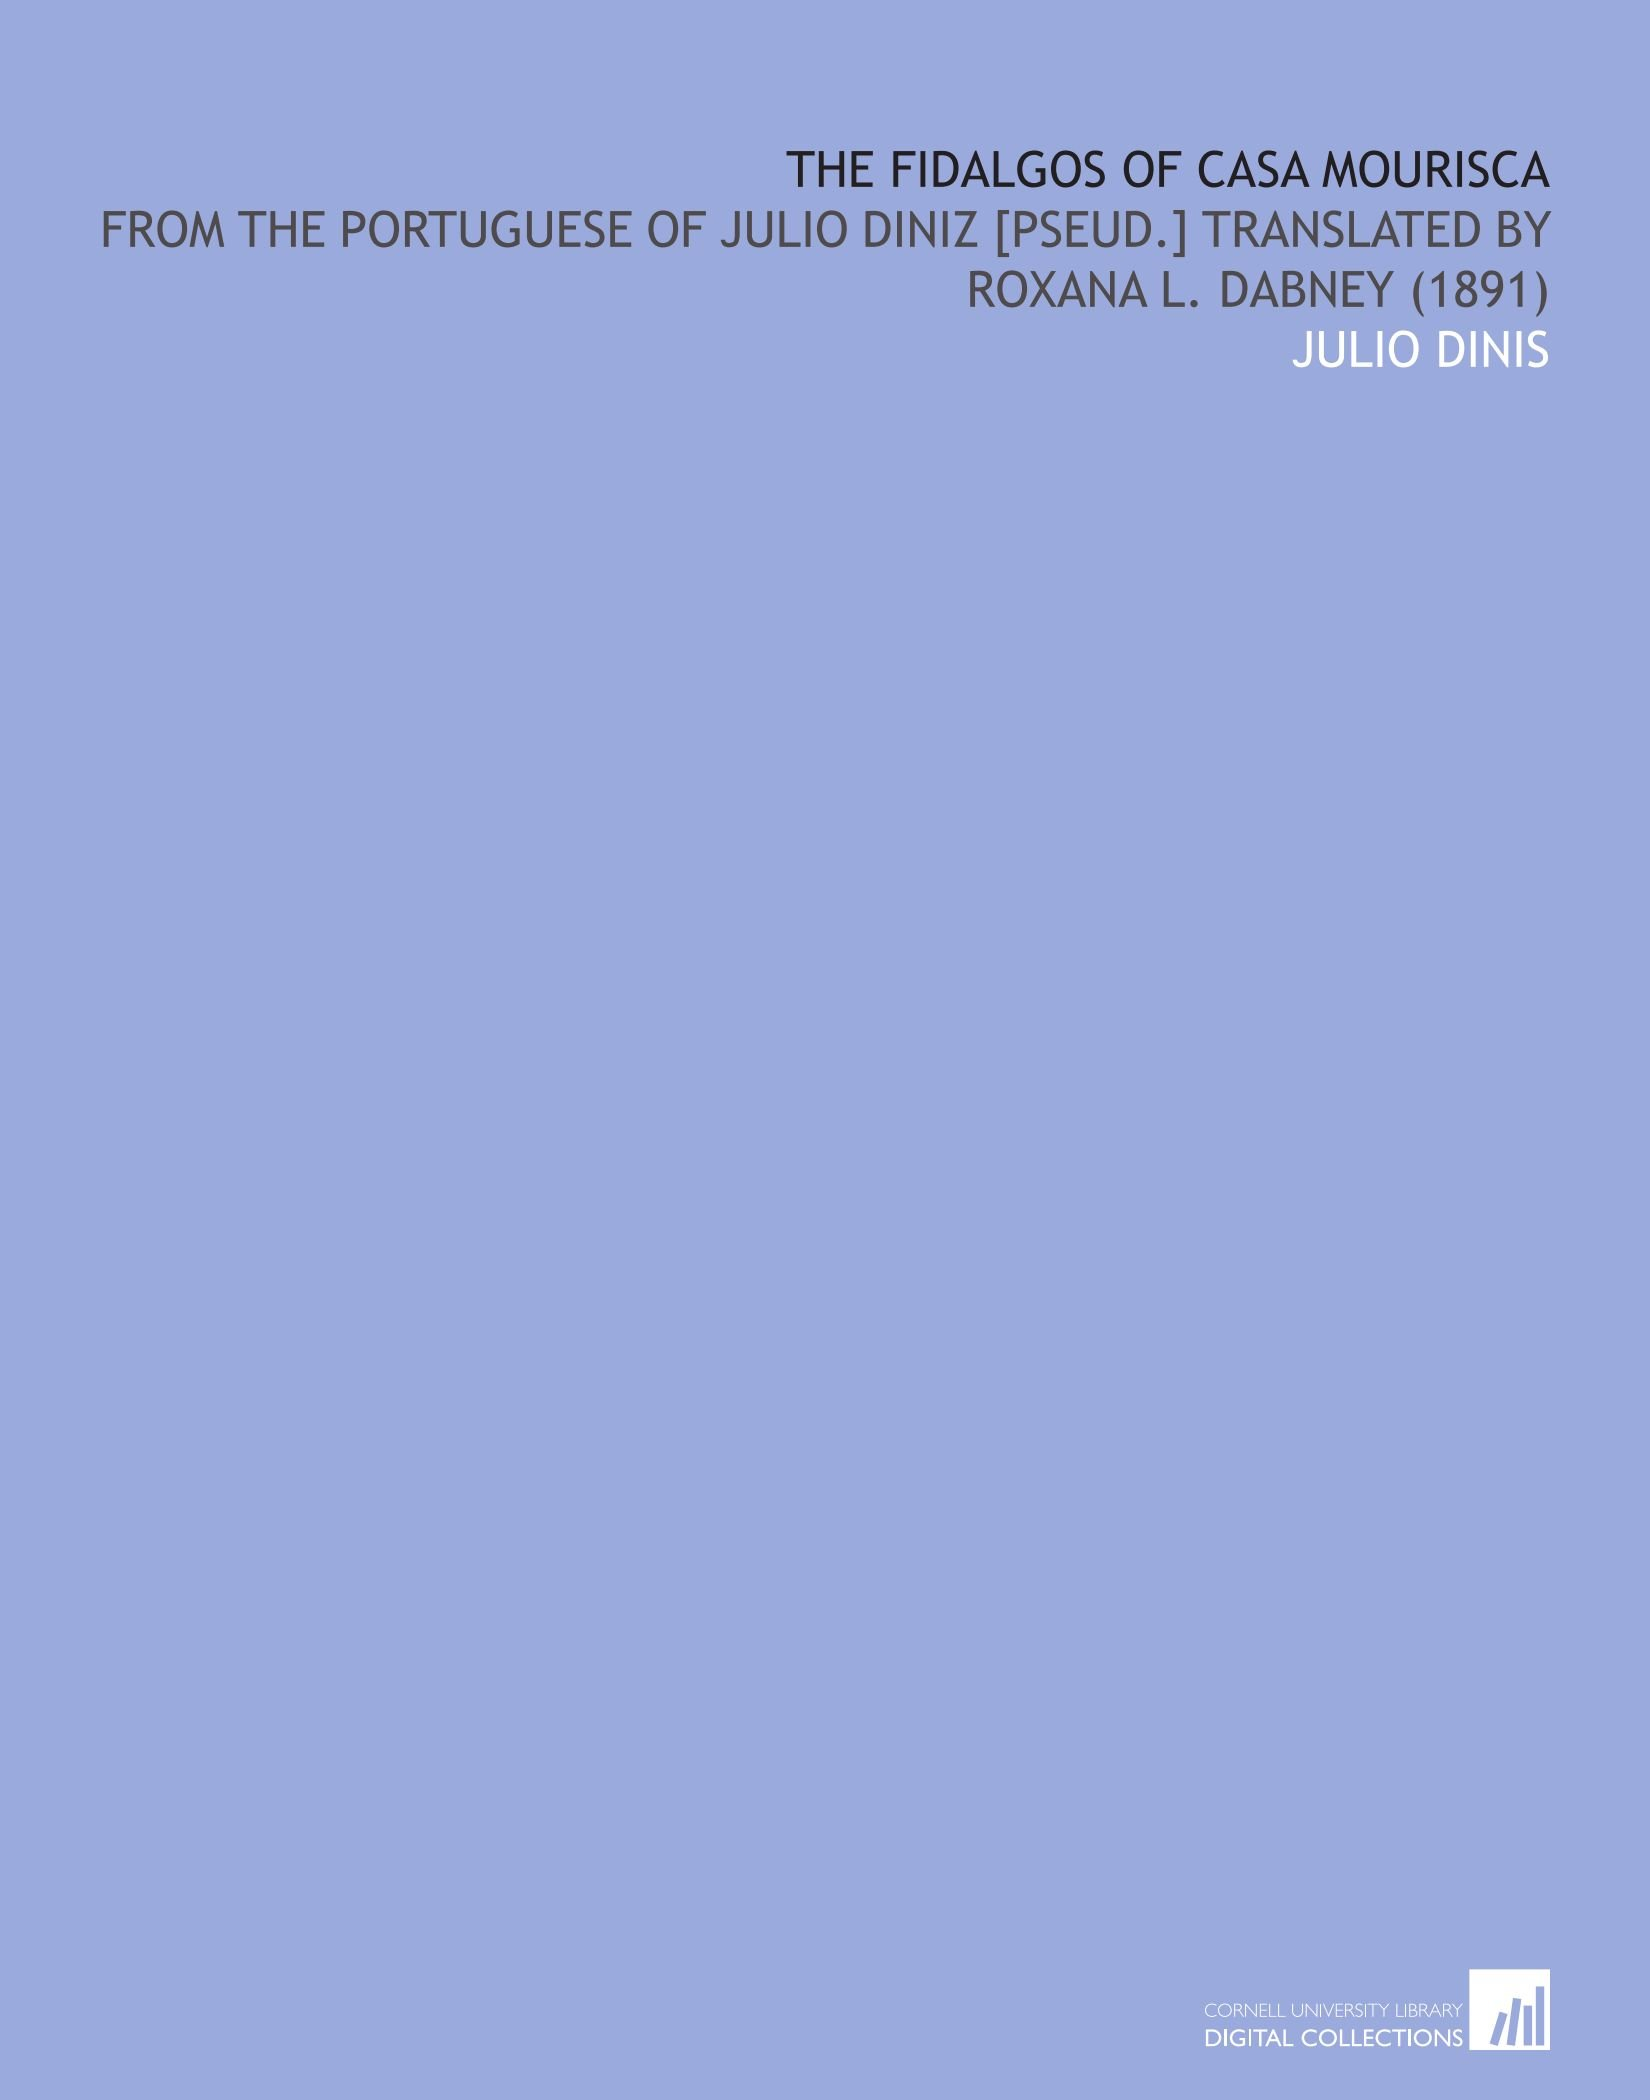 The Fidalgos of Casa Mourisca: From the Portuguese of Julio Diniz [Pseud.] Translated by Roxana L. Dabney (1891) PDF